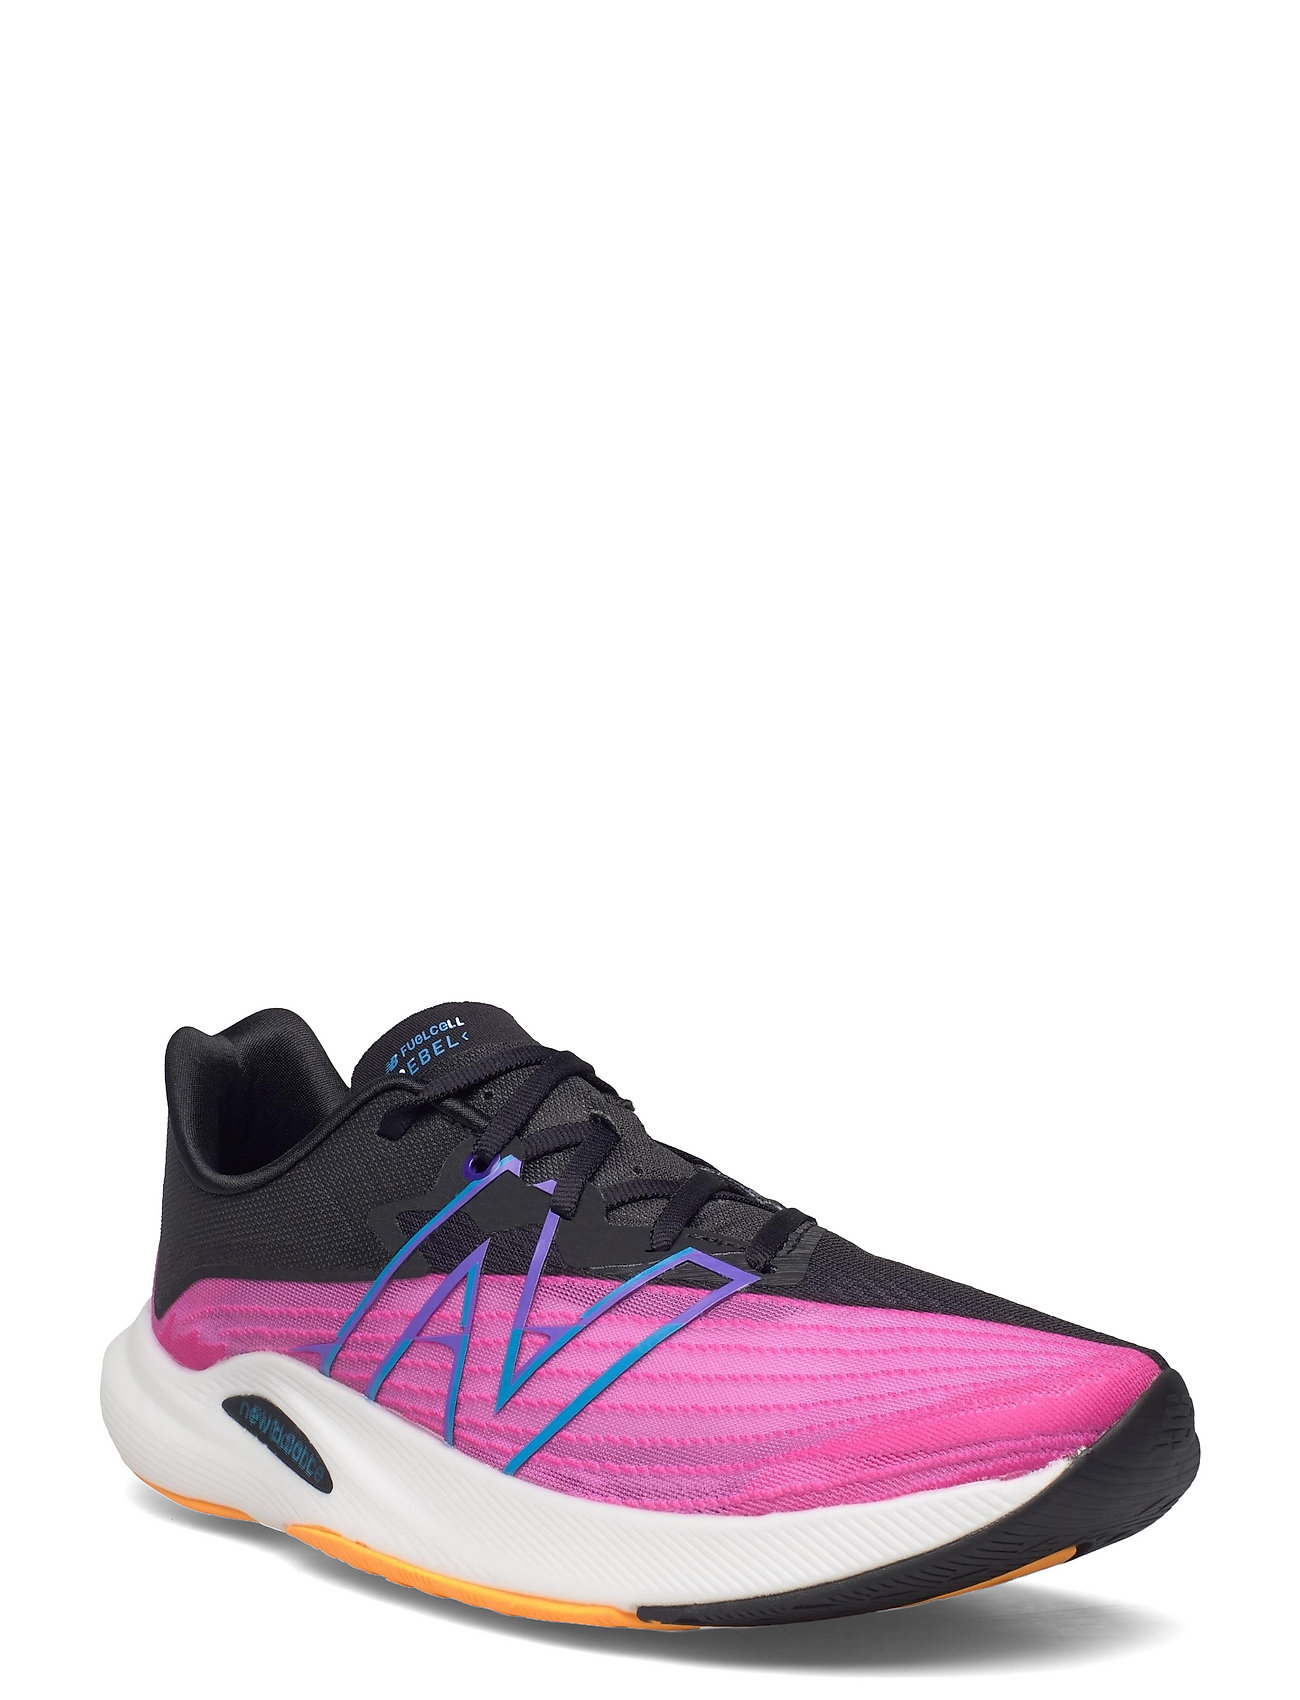 Mfcxcp2 Shoes Sport Shoes Running Shoes Multi/mønstret New Balance